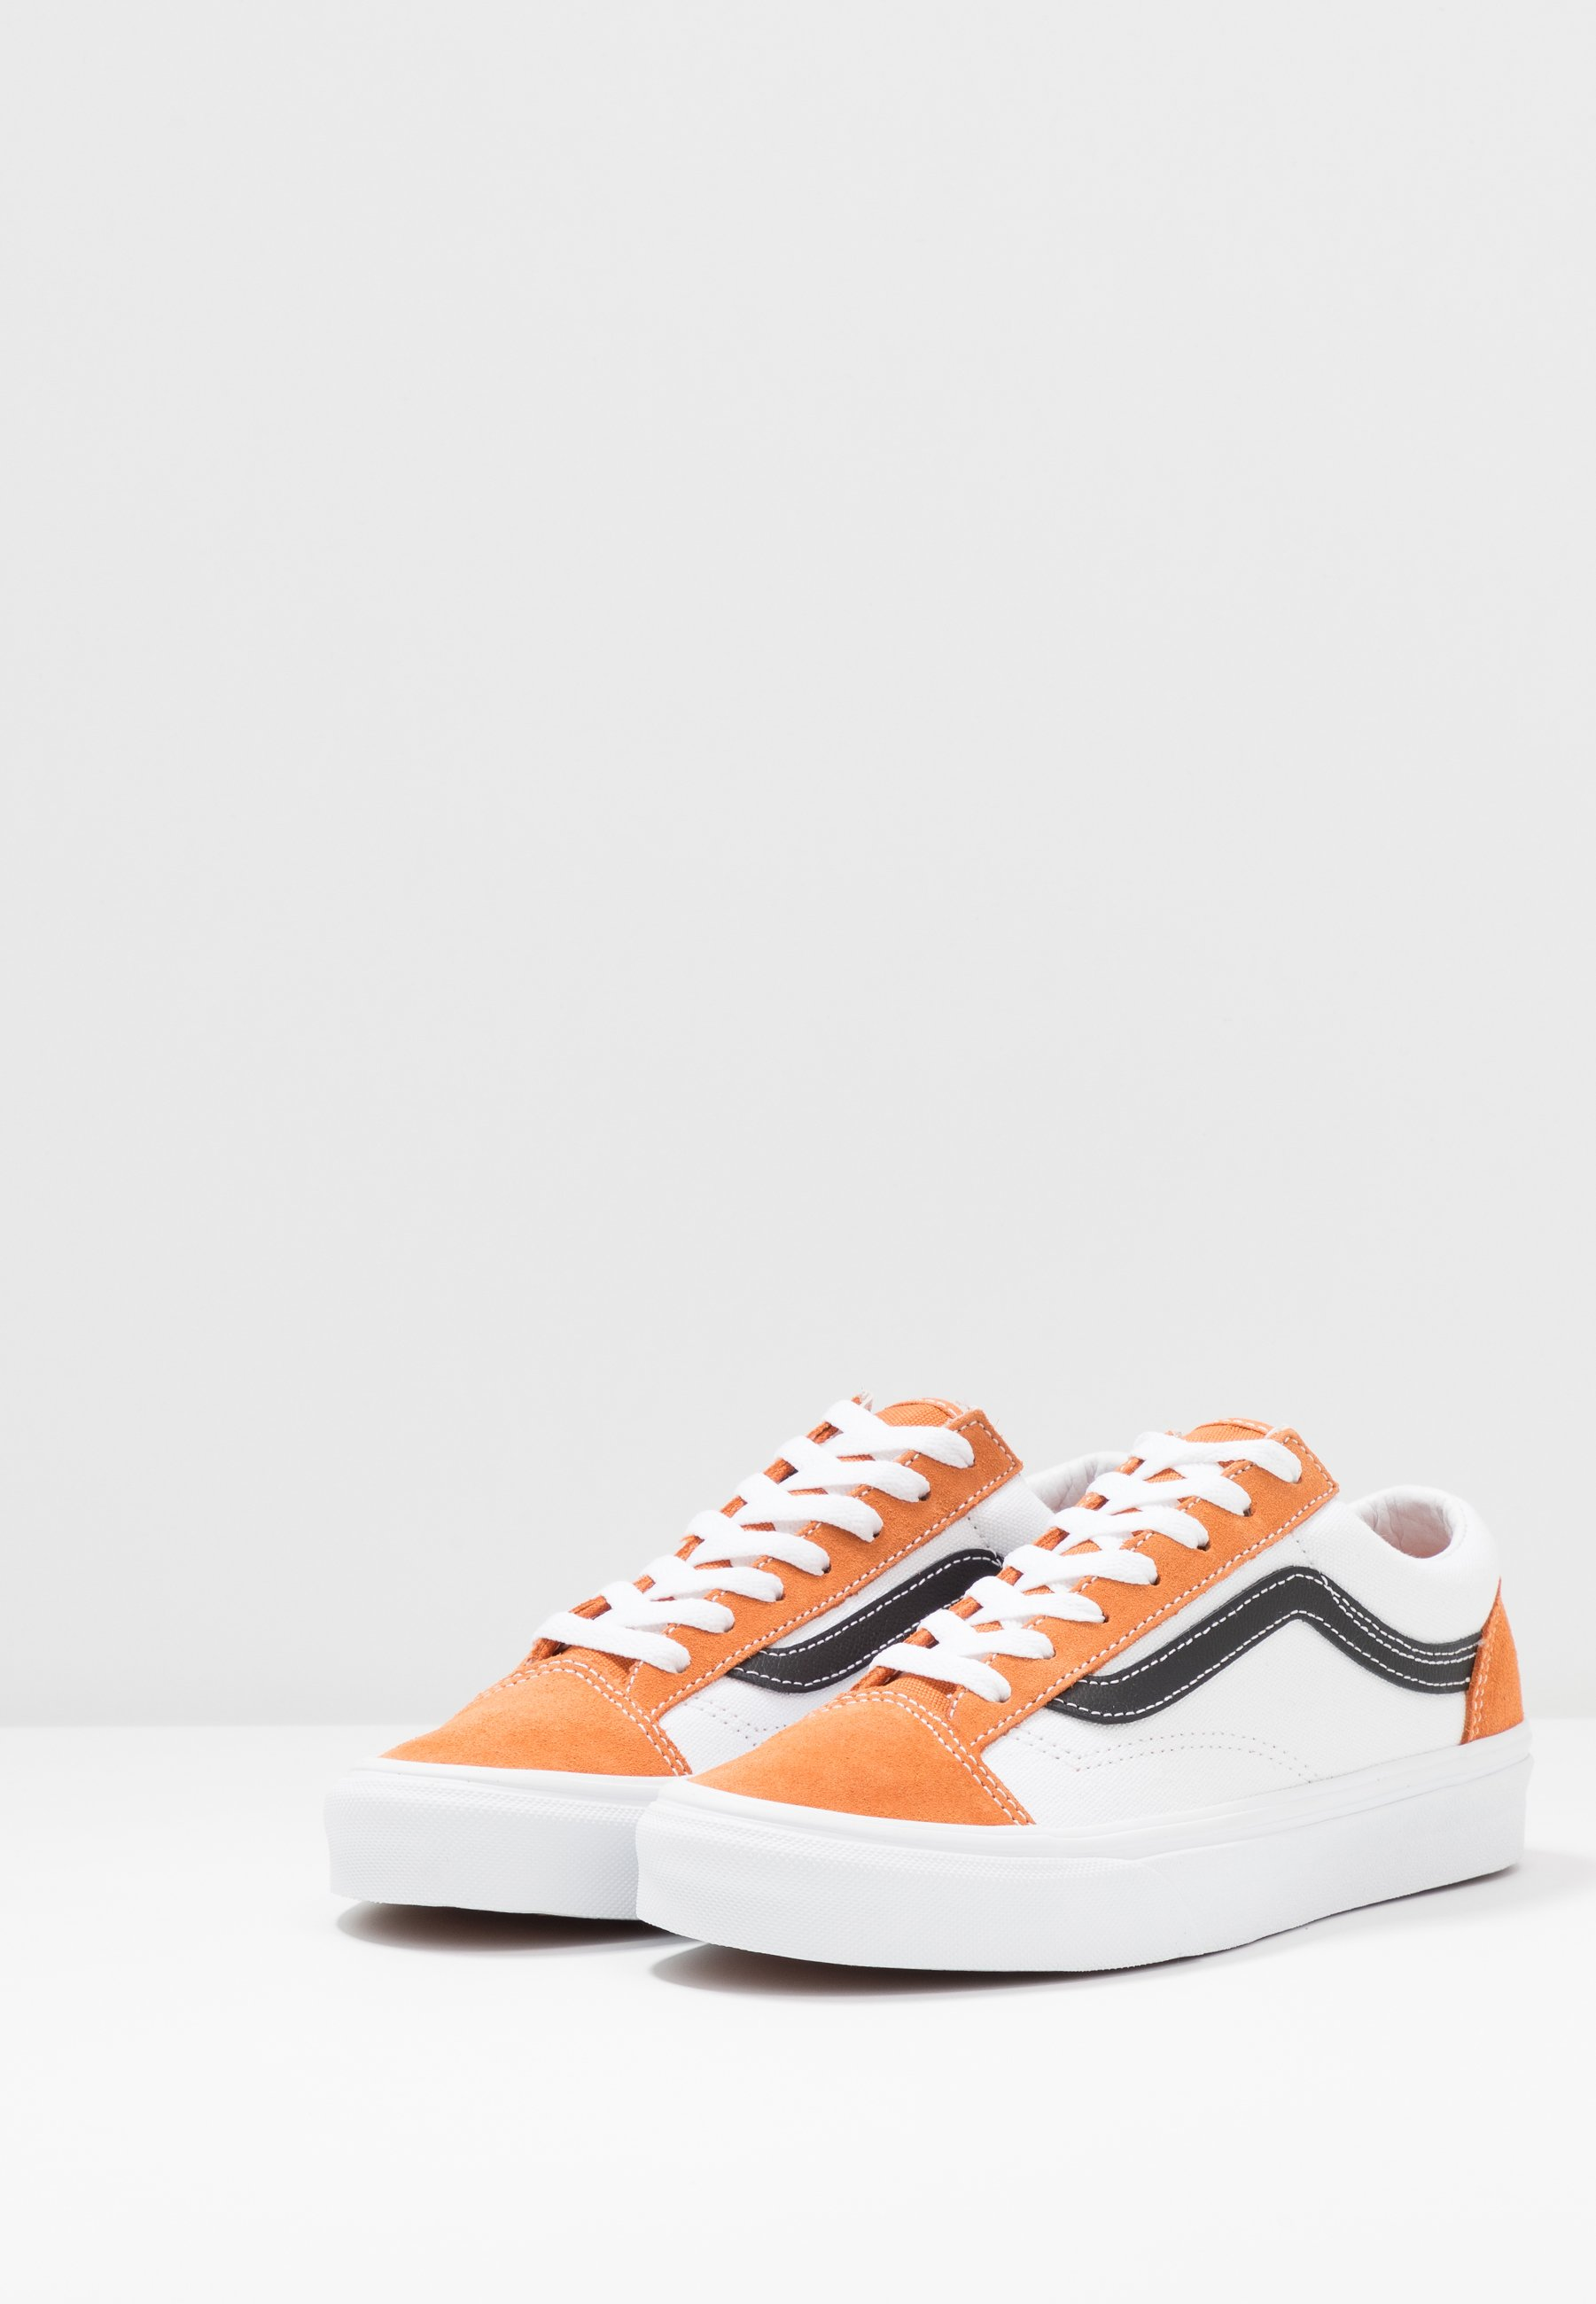 Vans Style 36 - Sneakers Apricot Buff/true White